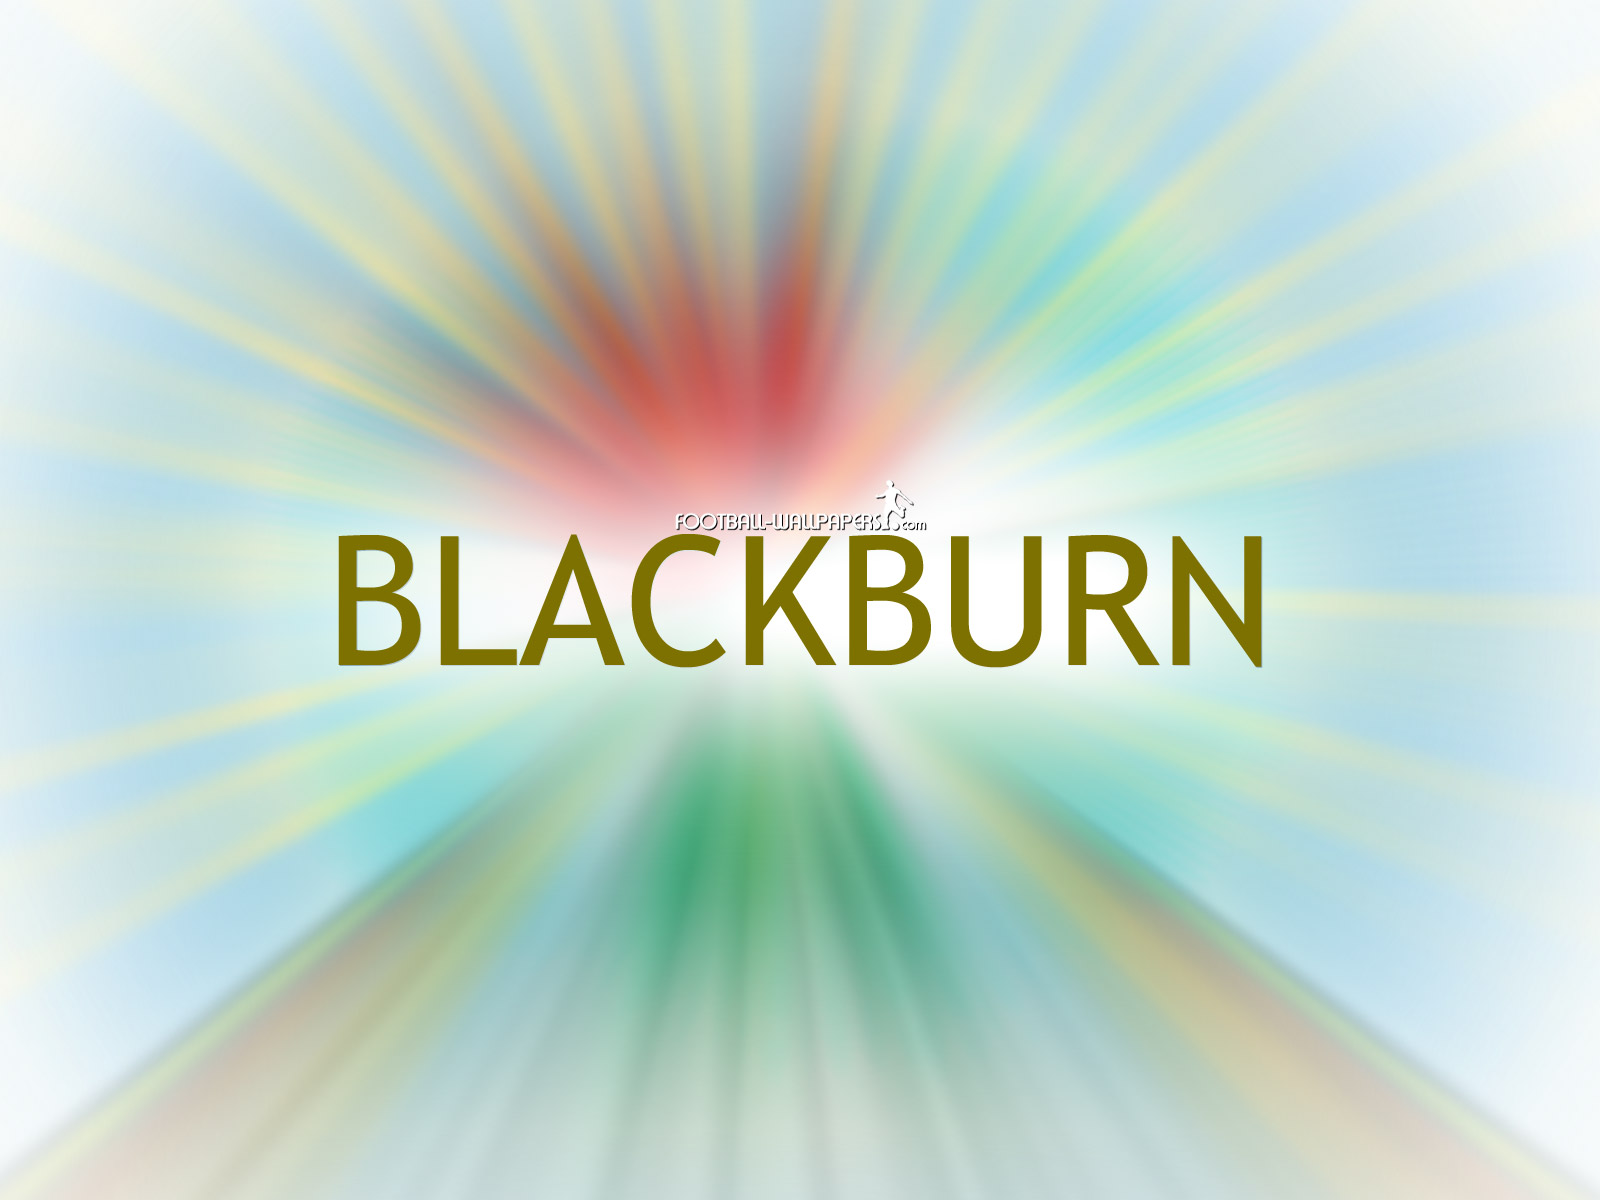 blackburn11600x1200.jpg